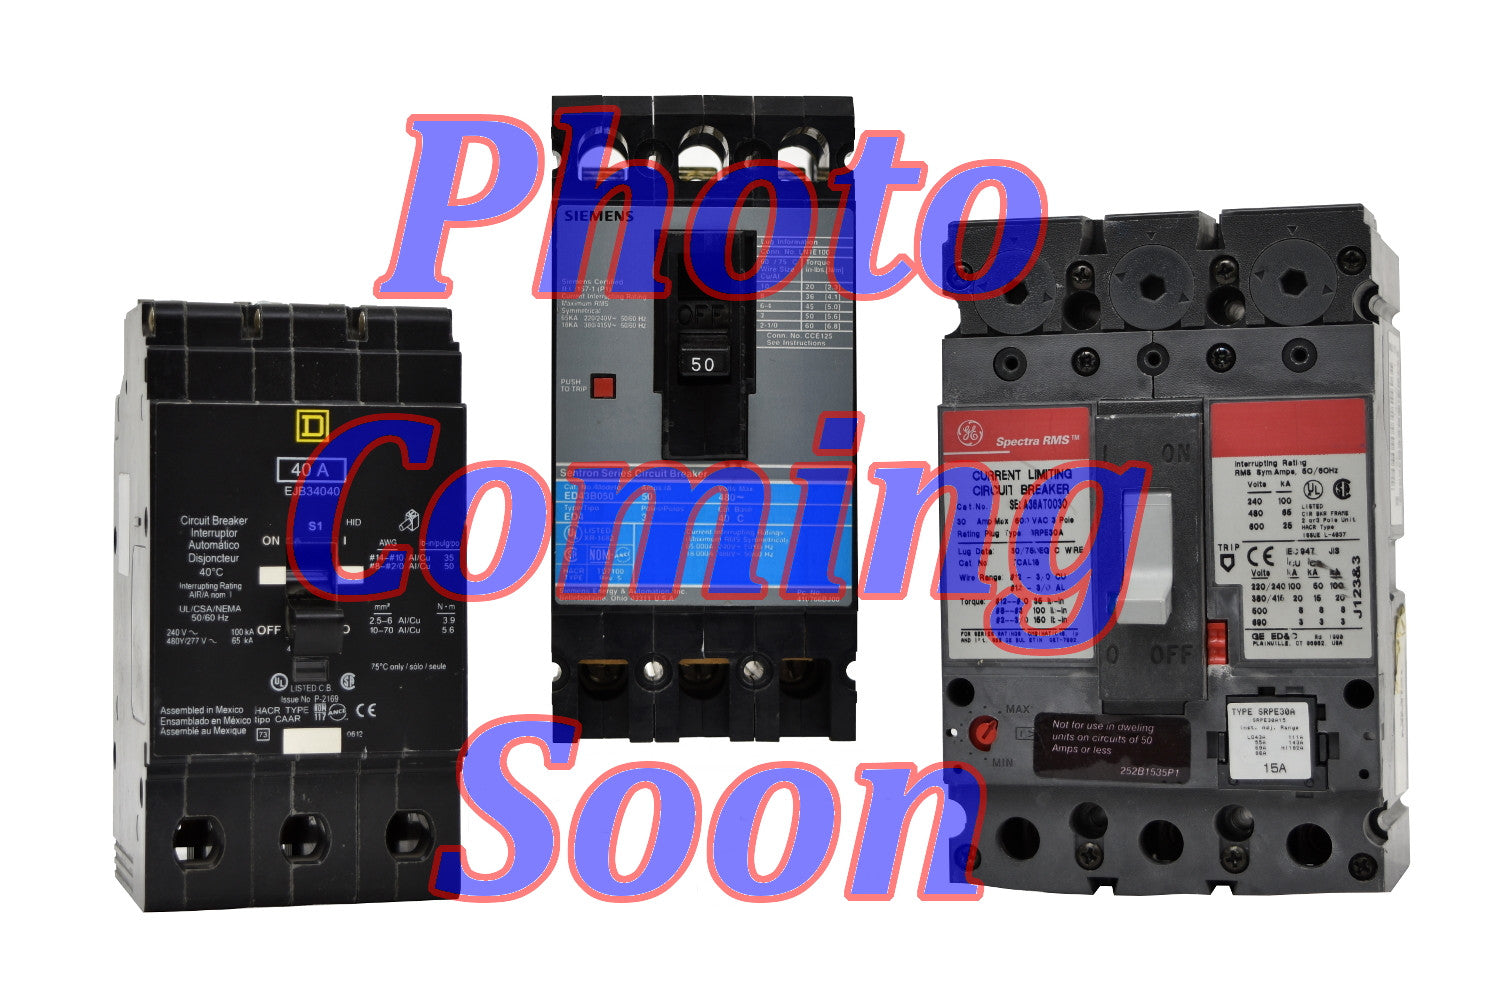 General Electric FCV36TE030R1 Circuit Breakers